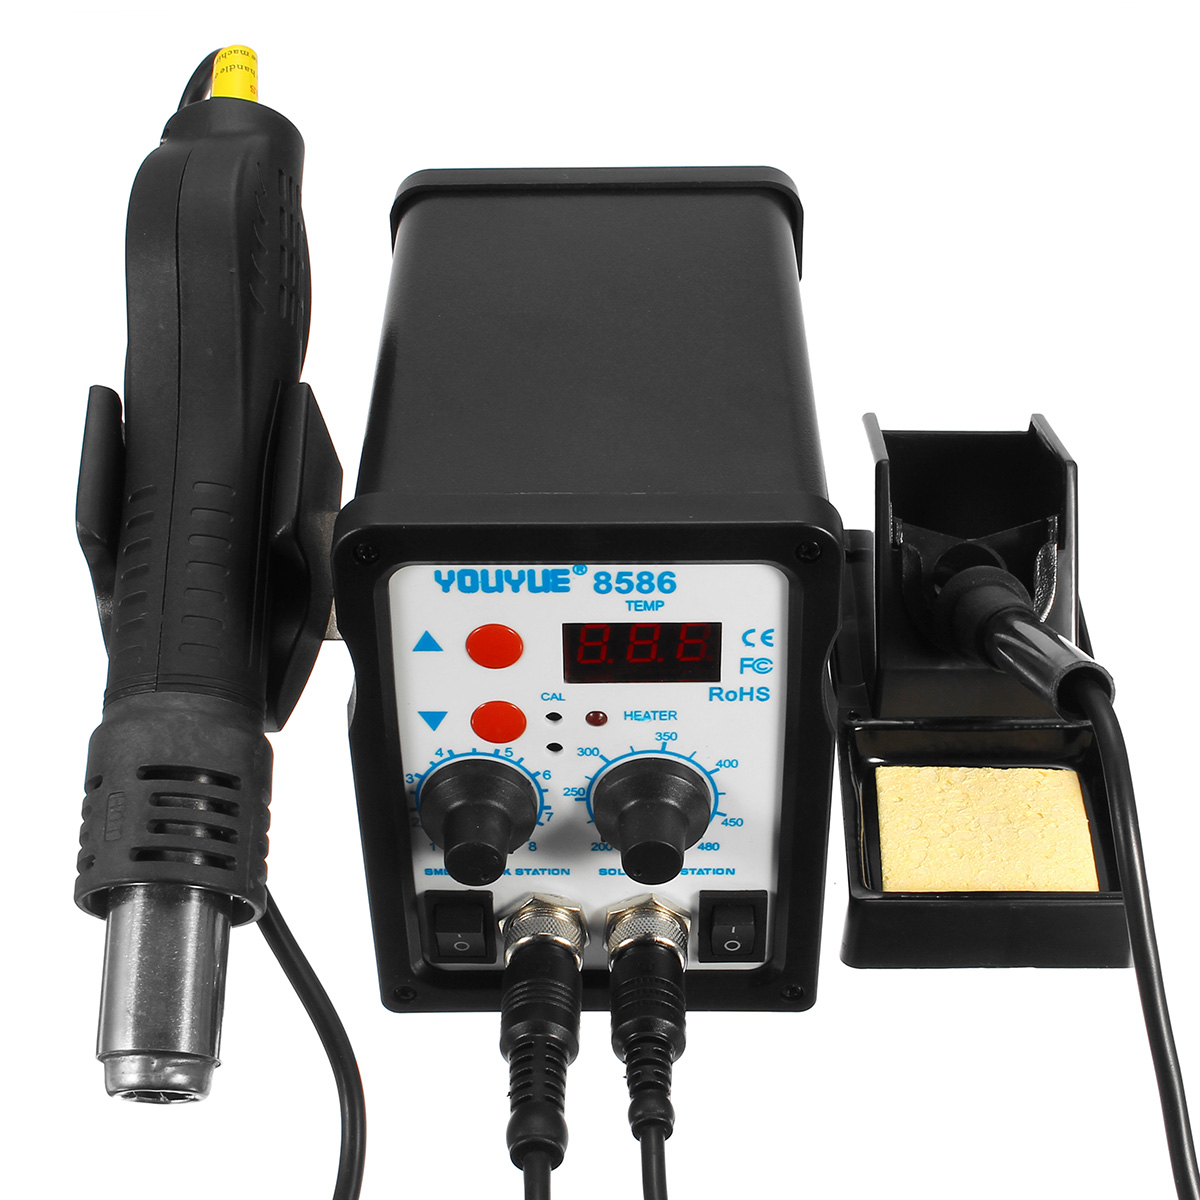 YOUYUE 8586 2 in 1 SMD Rework Soldering Station Hot Air Gun + Solder Iron Tool